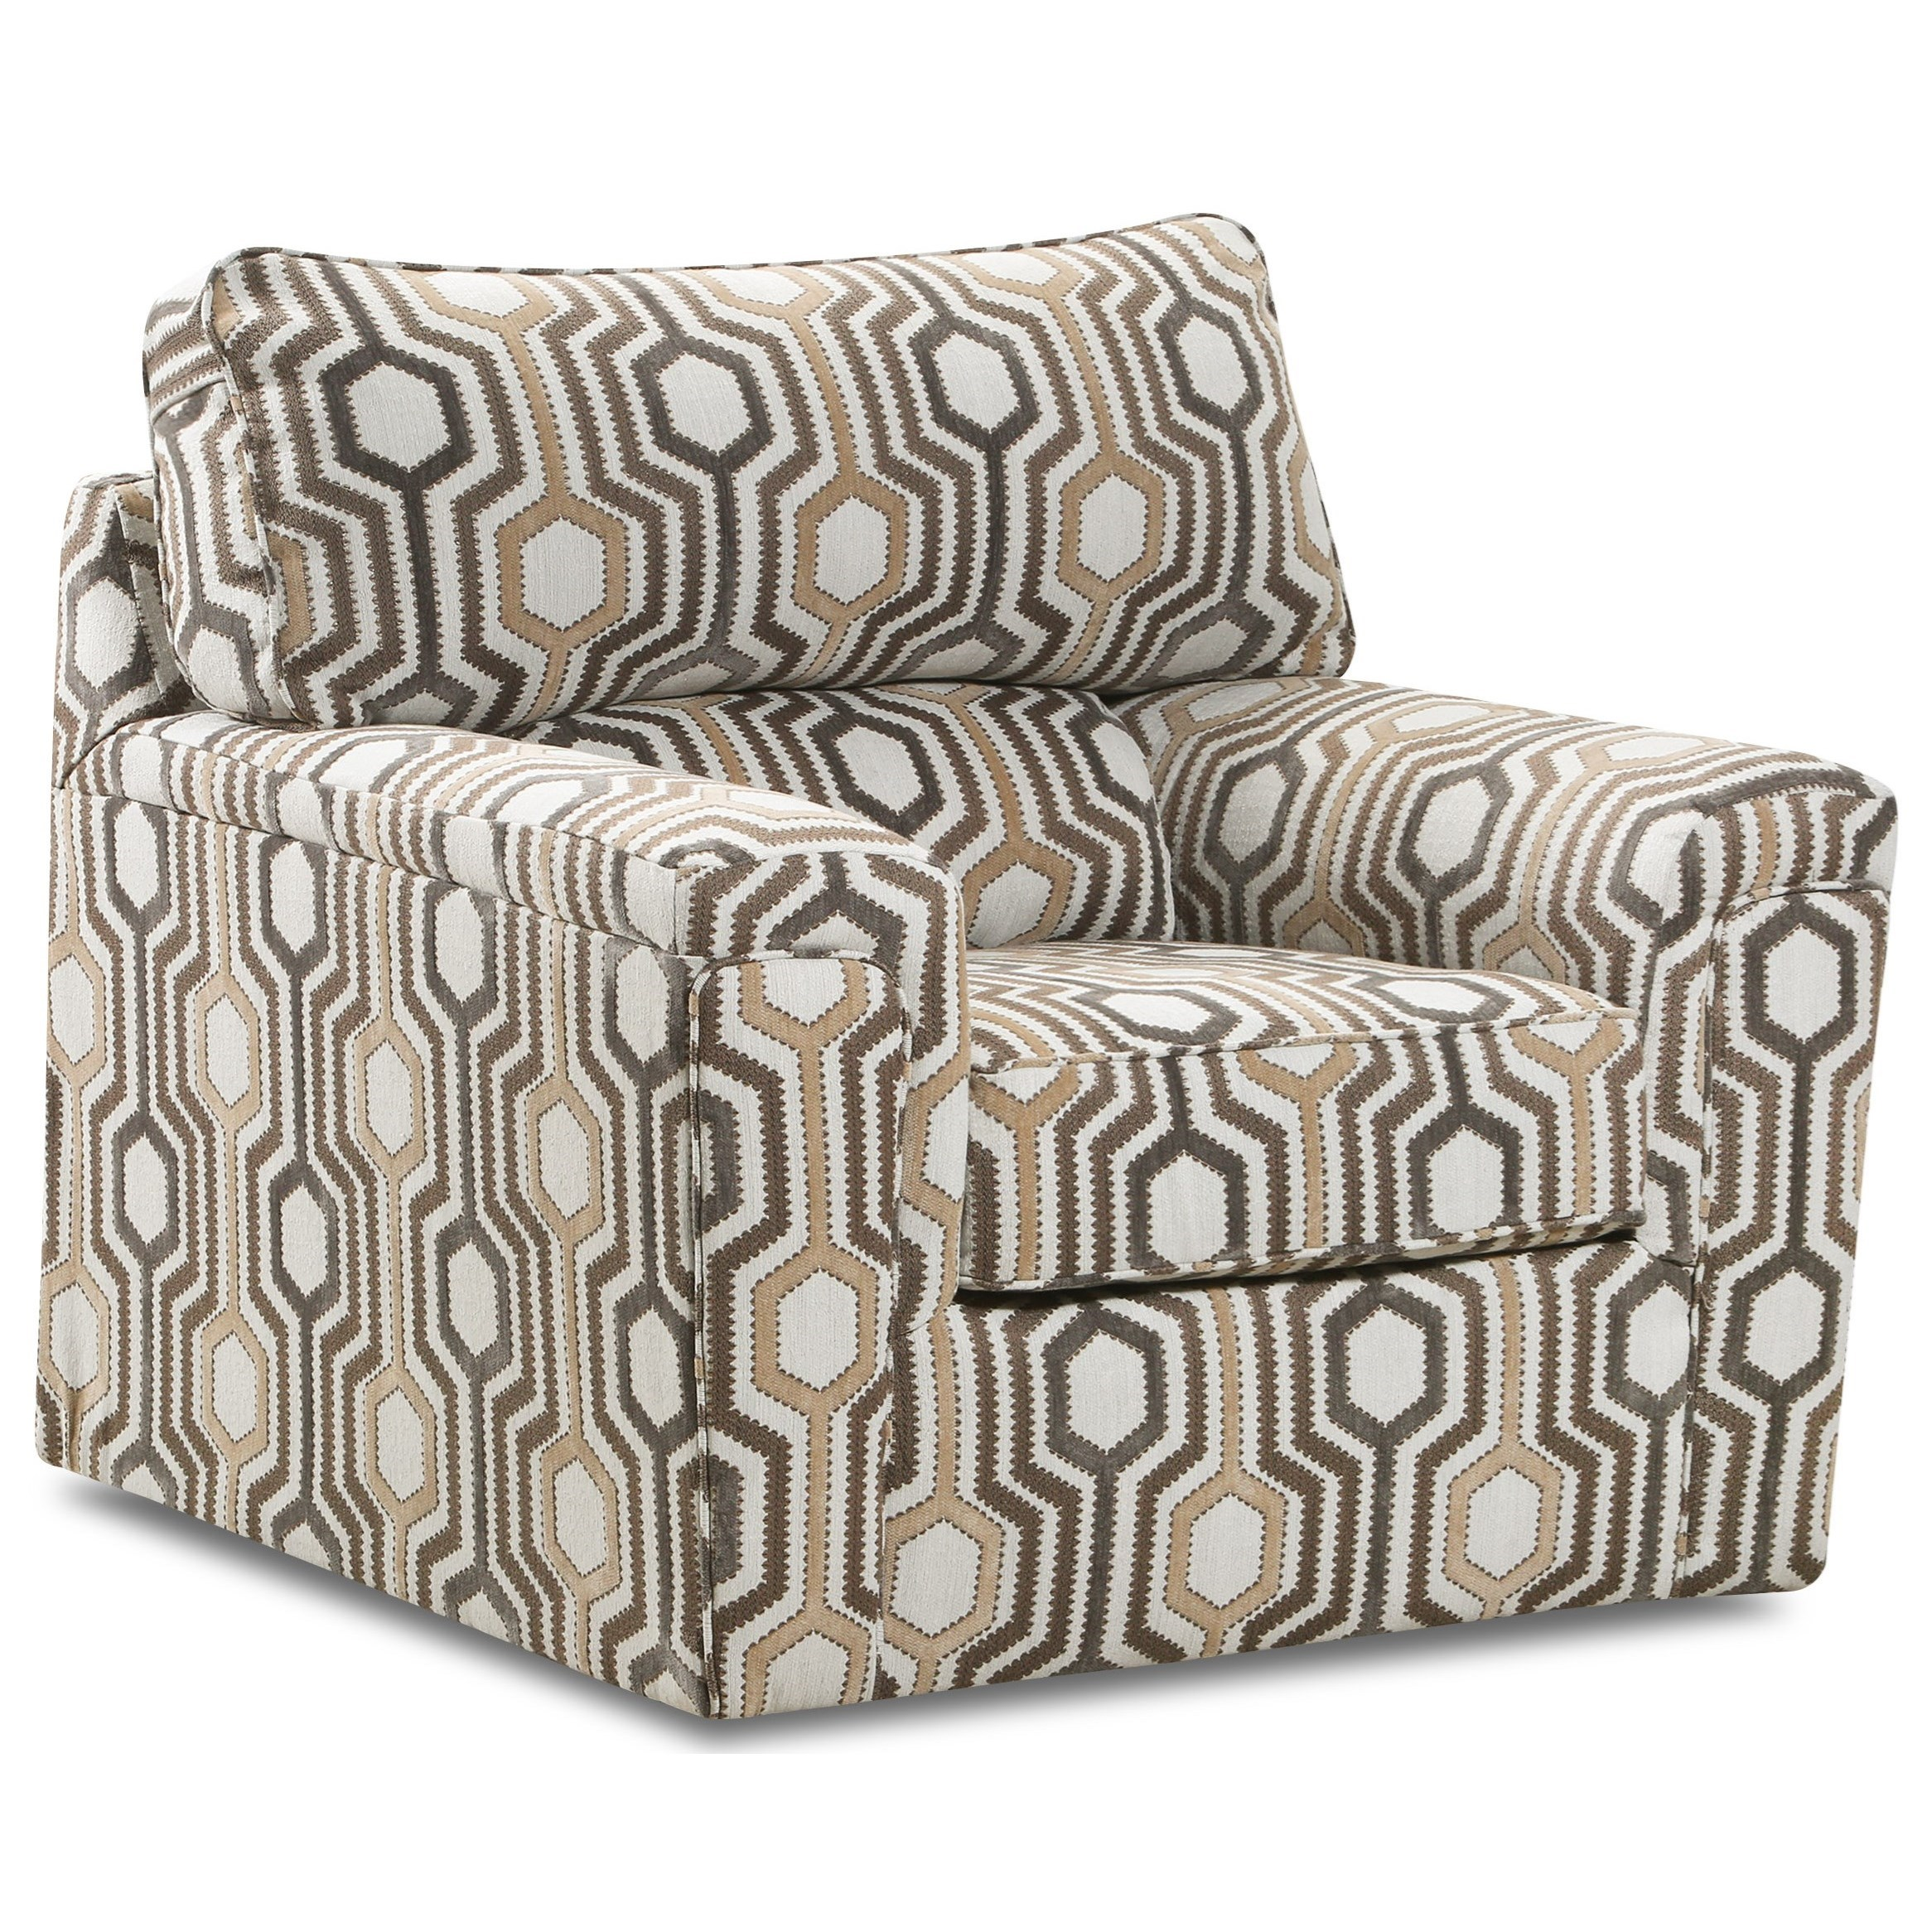 2015 Accent Swivel Chair by Lane at Powell's Furniture and Mattress